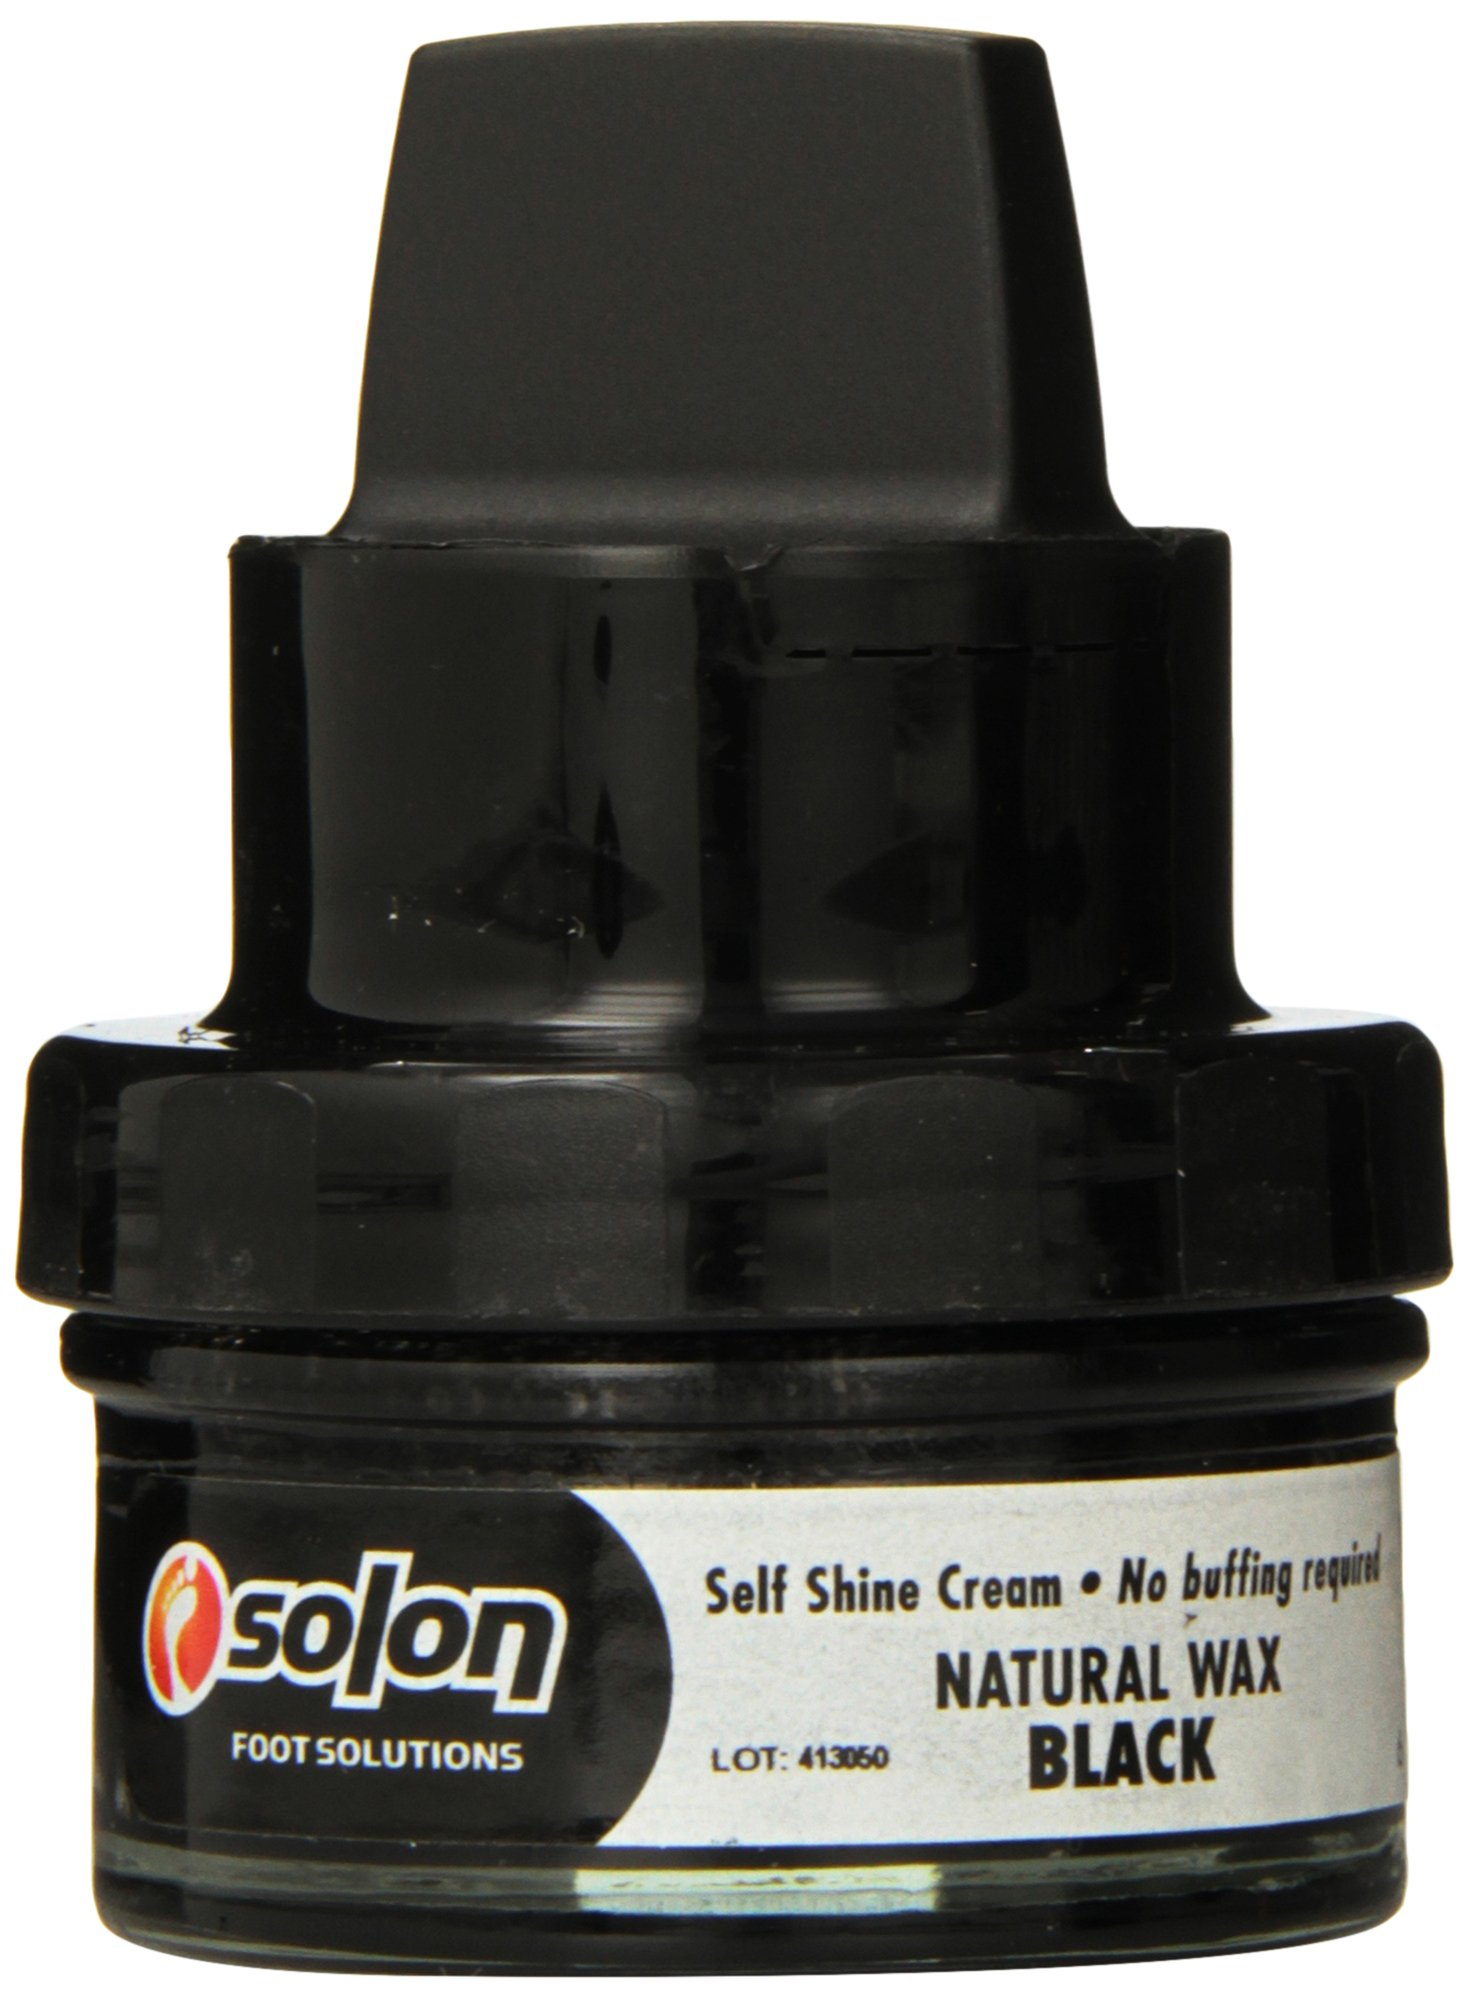 Solon Foot Solutions Self Shine Cream, Black, 3-Ounce (Pack of 4)